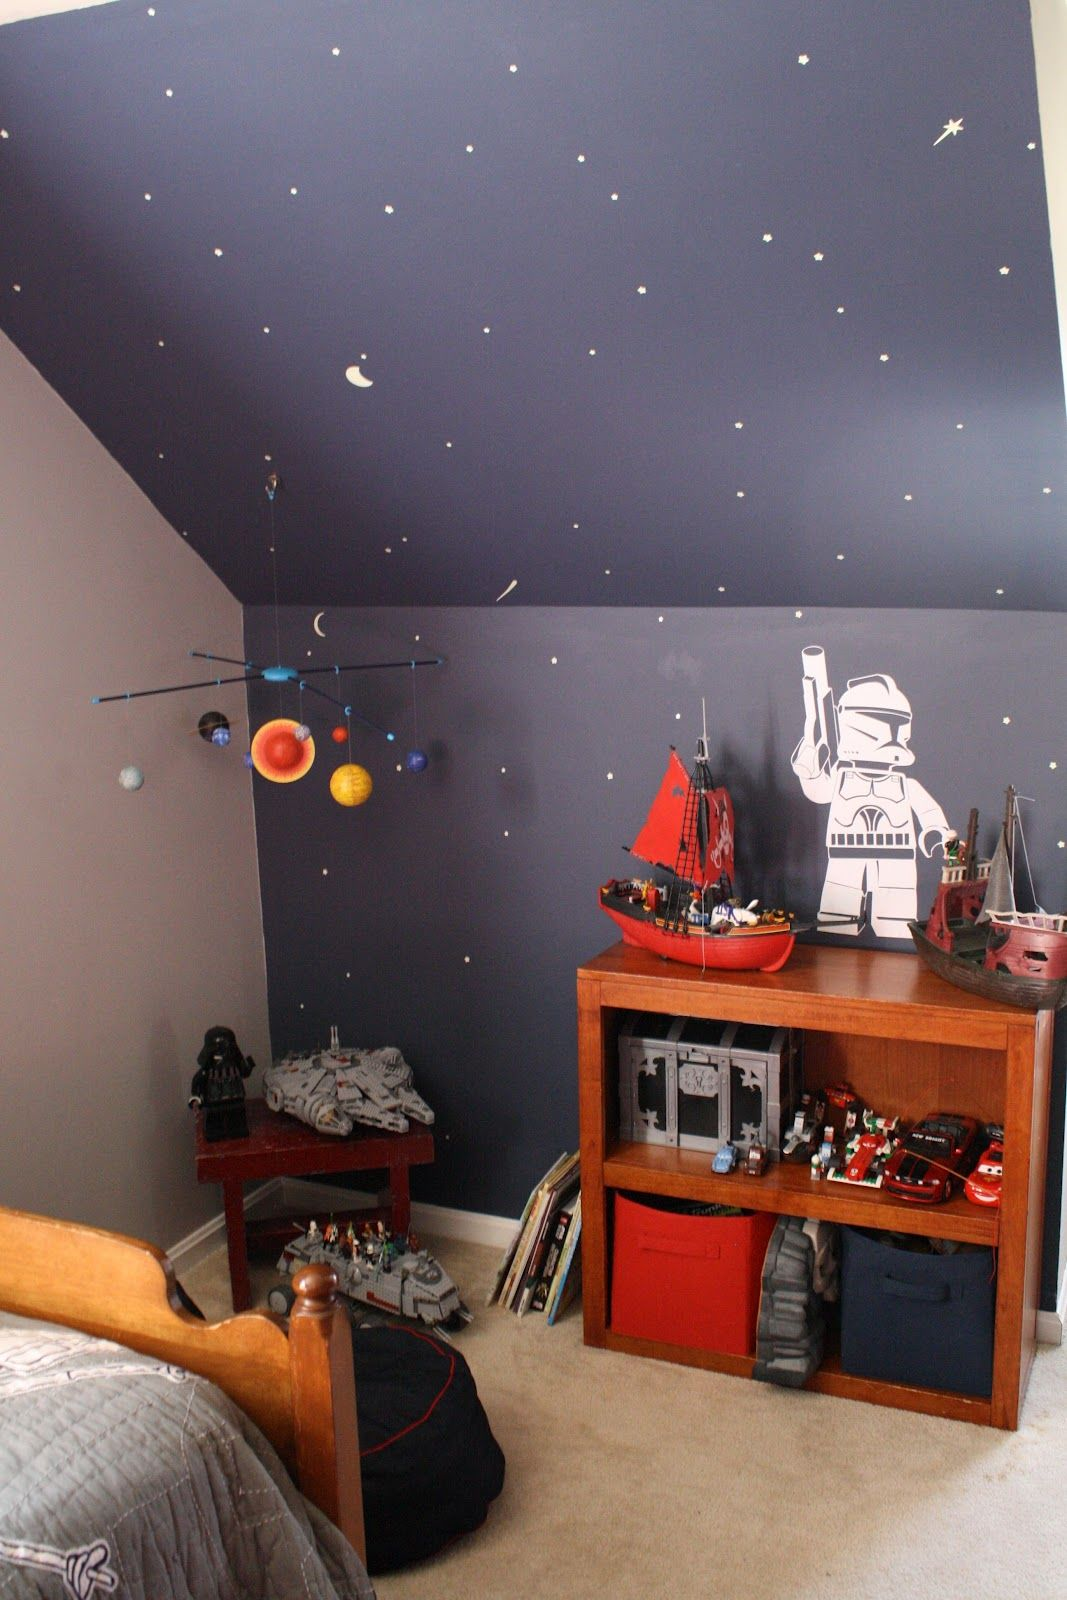 Remodelaholic » Blog Archive Designing Kids Rooms for a Boy and Girl ...